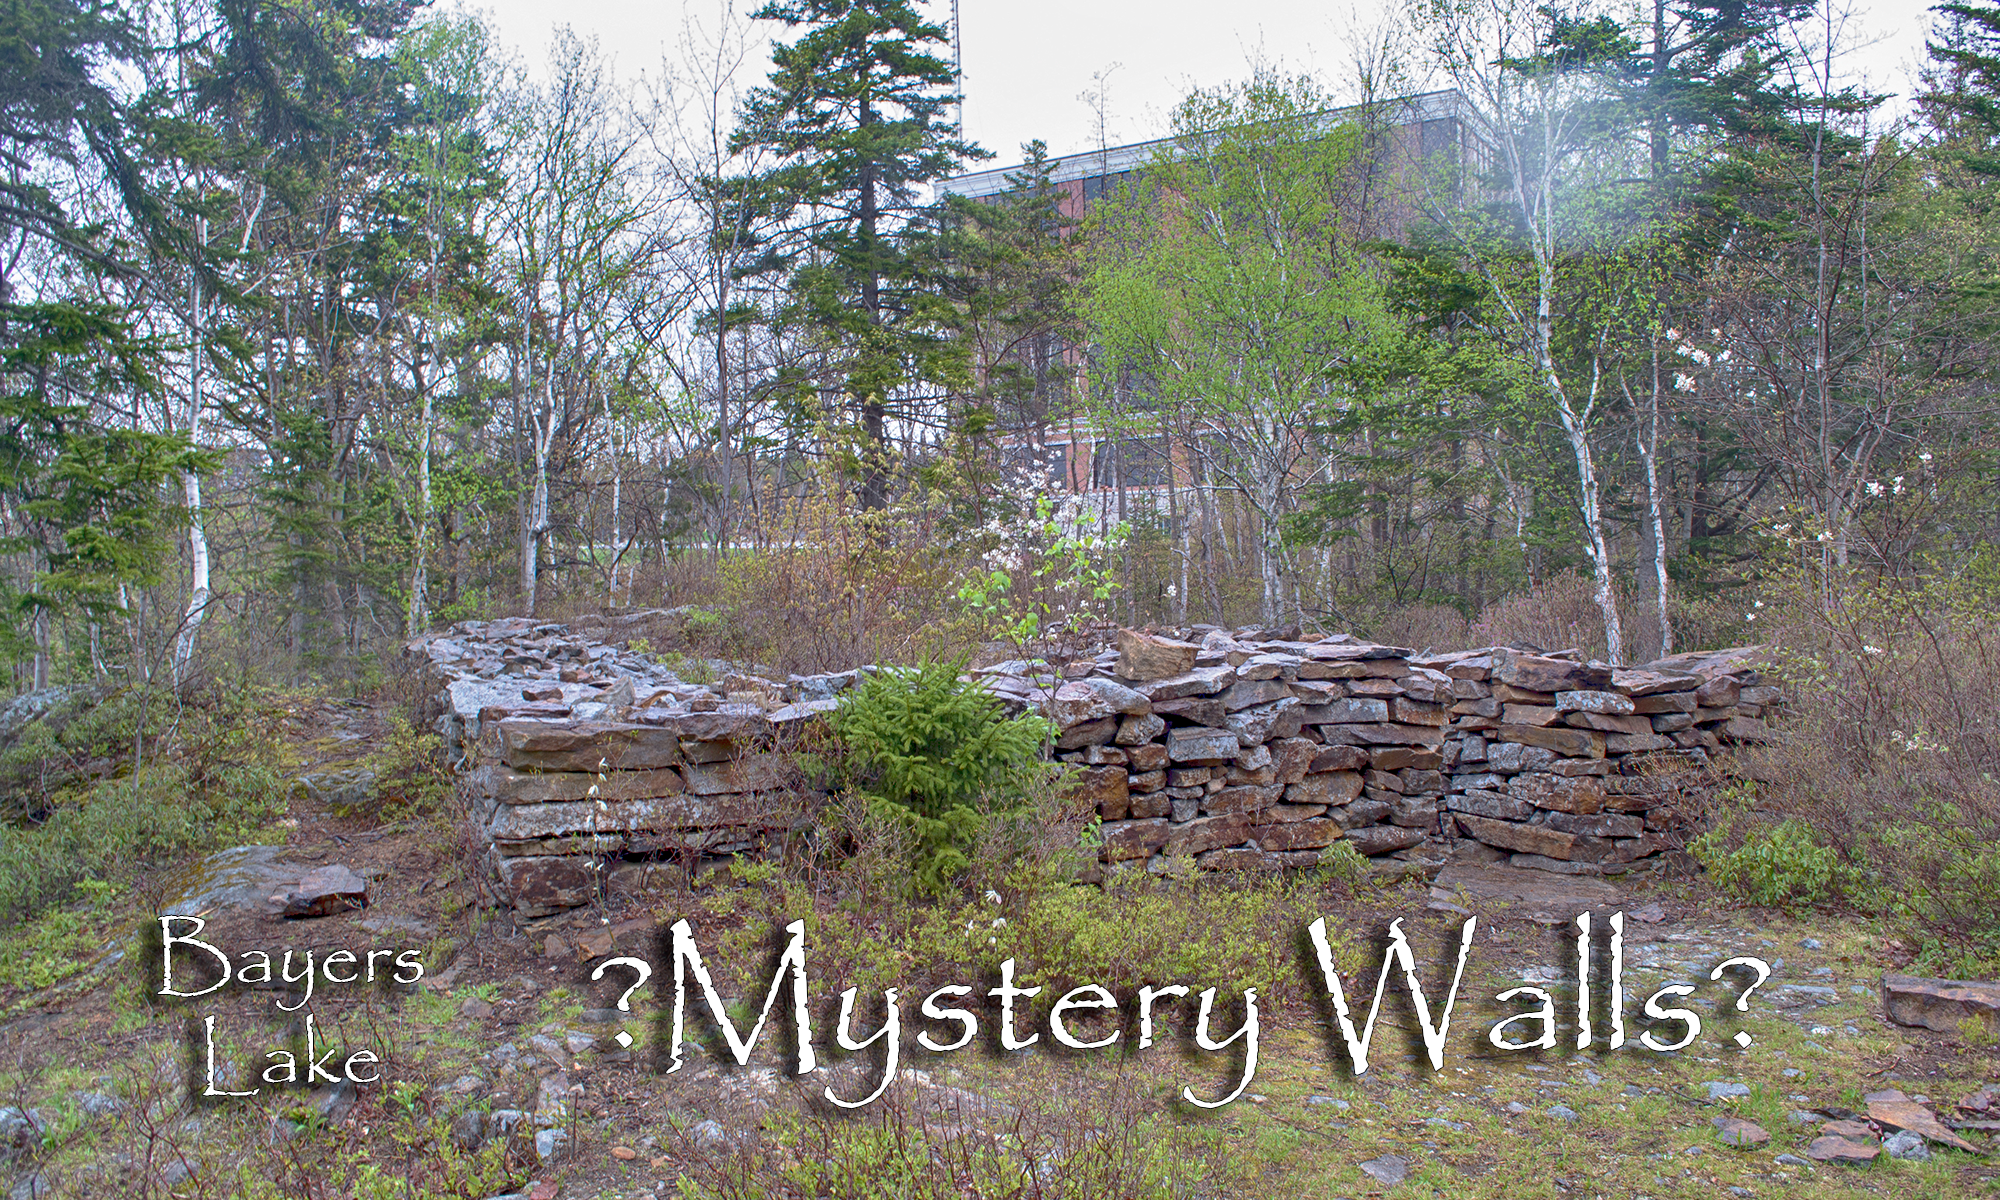 Bayers Lake Mystery Walls Photos